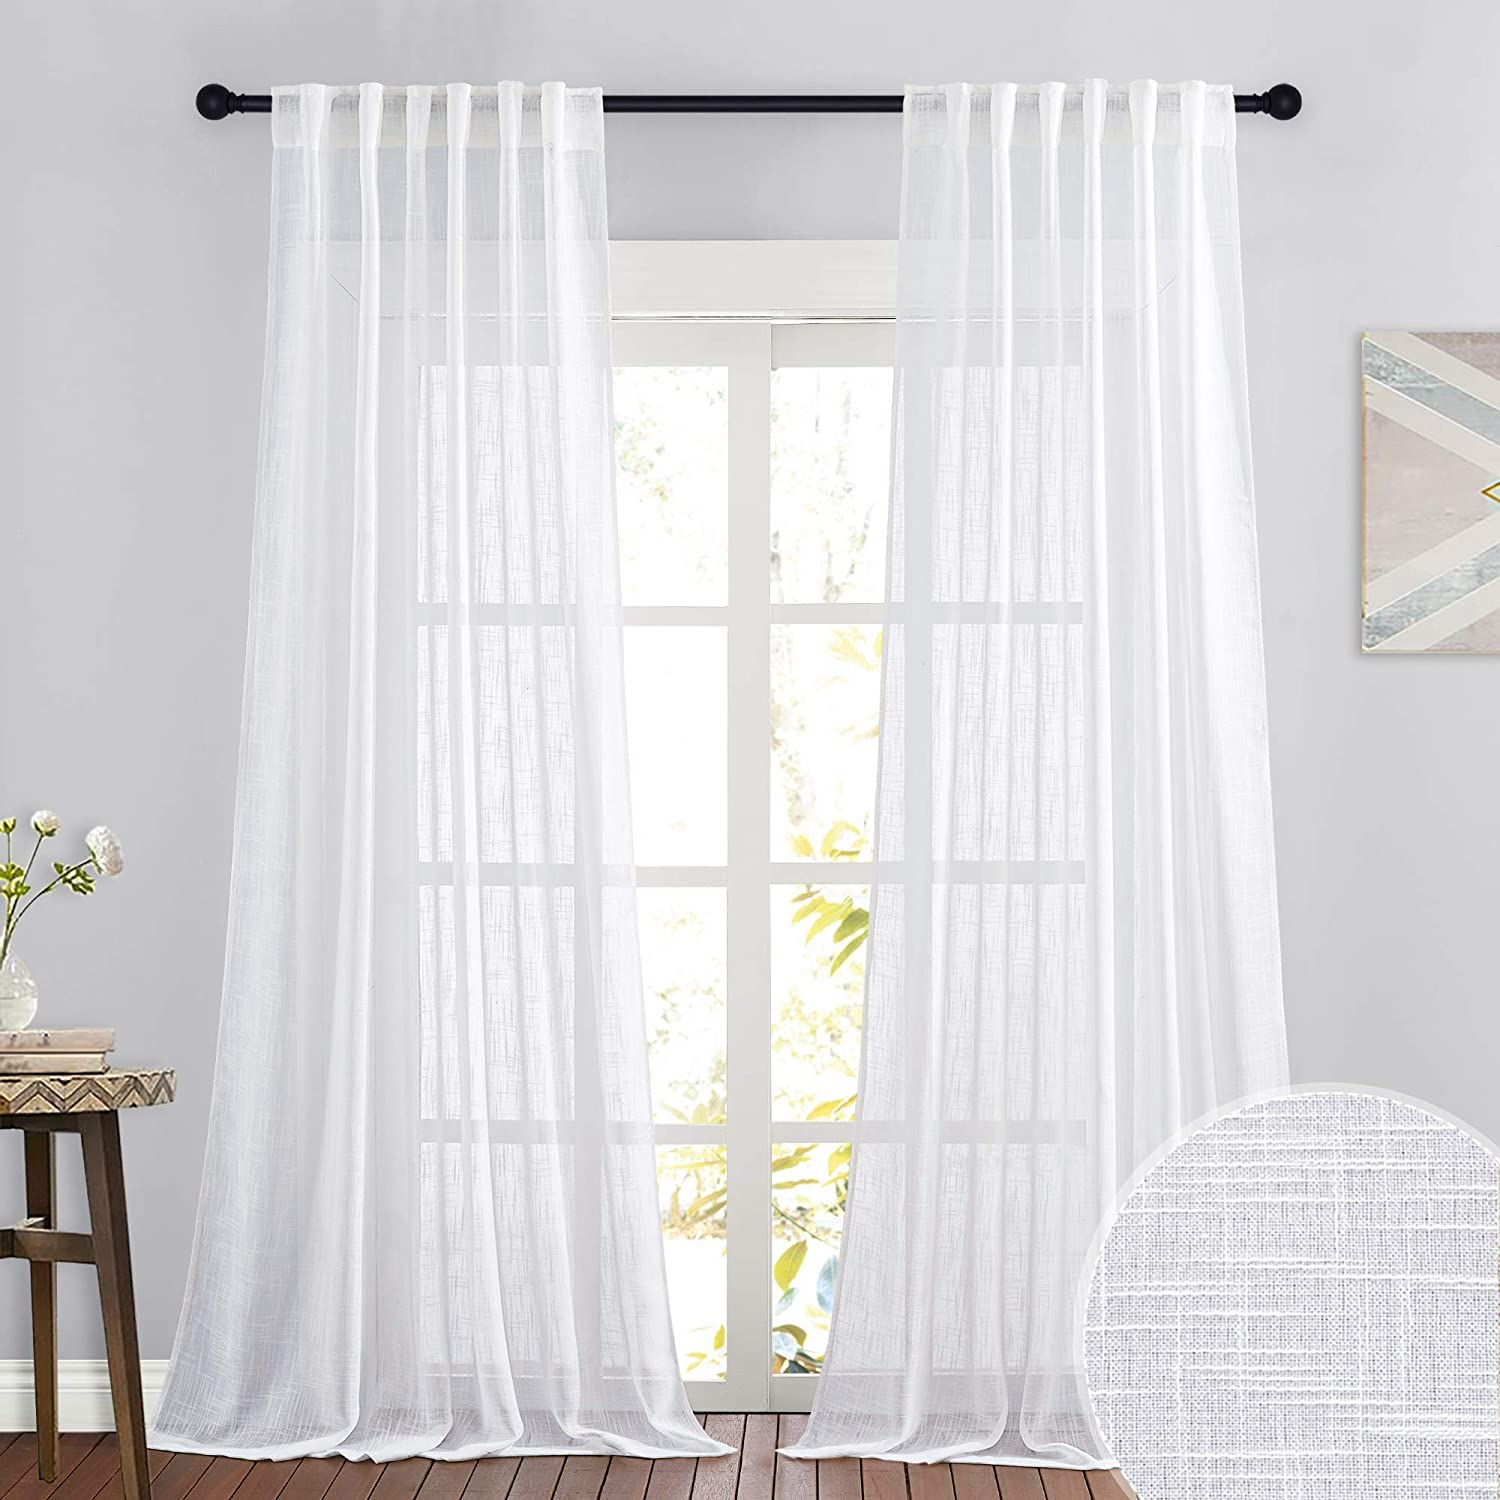 RYB HOME Linen Sheer Curtains for Living Room Textured Semi Sheer Curtains Rod Pocket & Back Tab Style Window Treatment for Bedroom Patio Door, White, 52 inch Width x 108 inch Length, 2 Panels